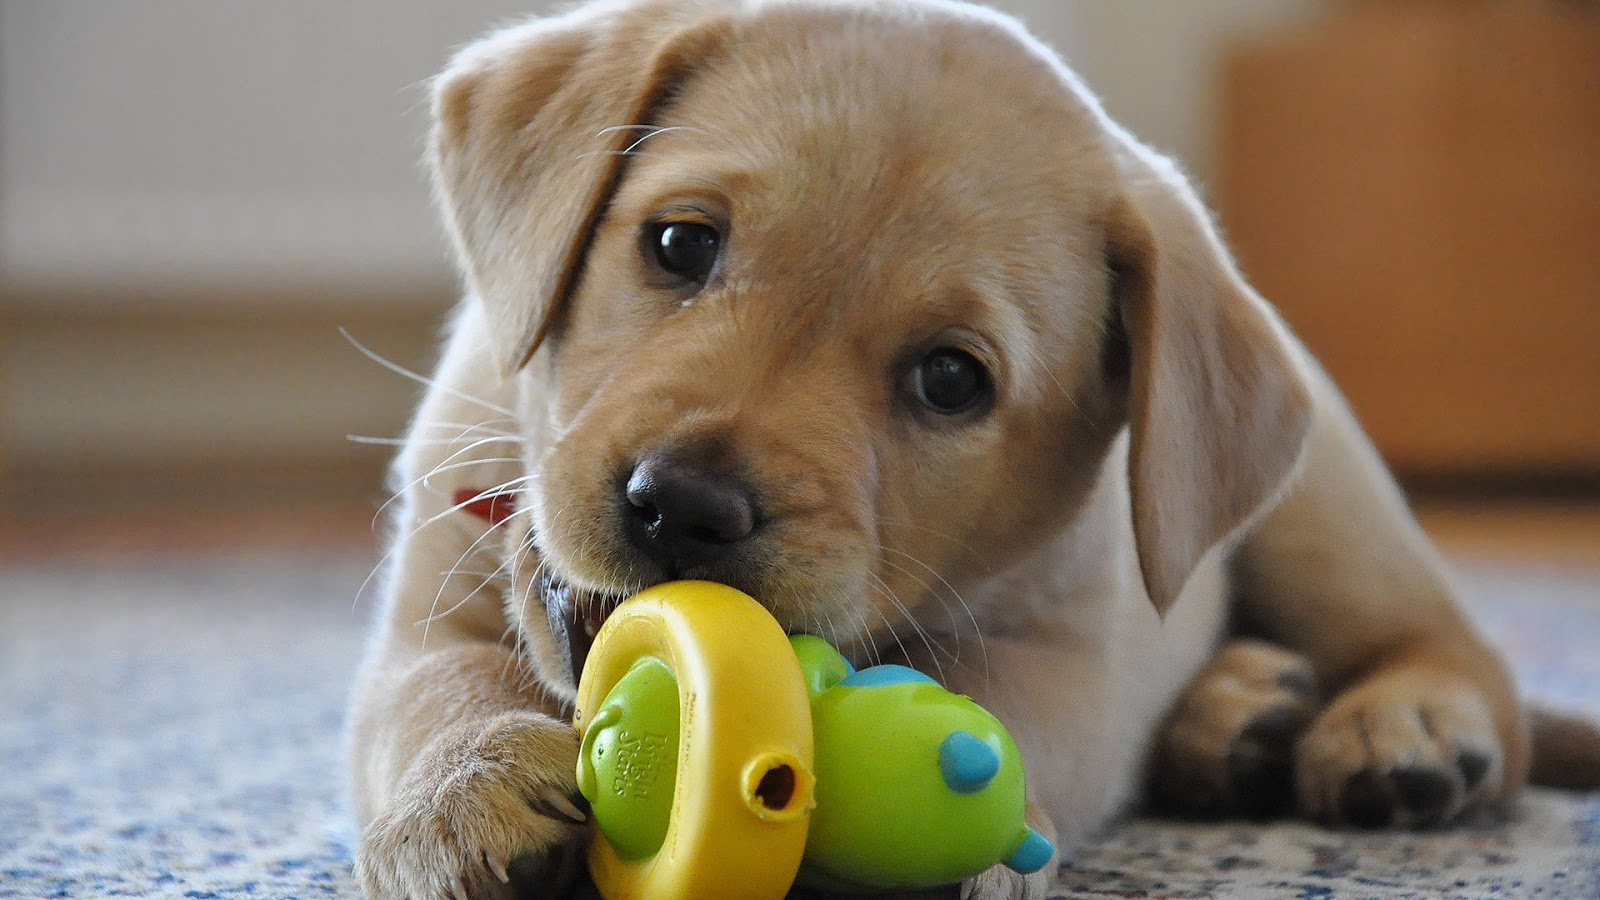 Cream Labrador Retriever puppy chewing on his toy and happy alone